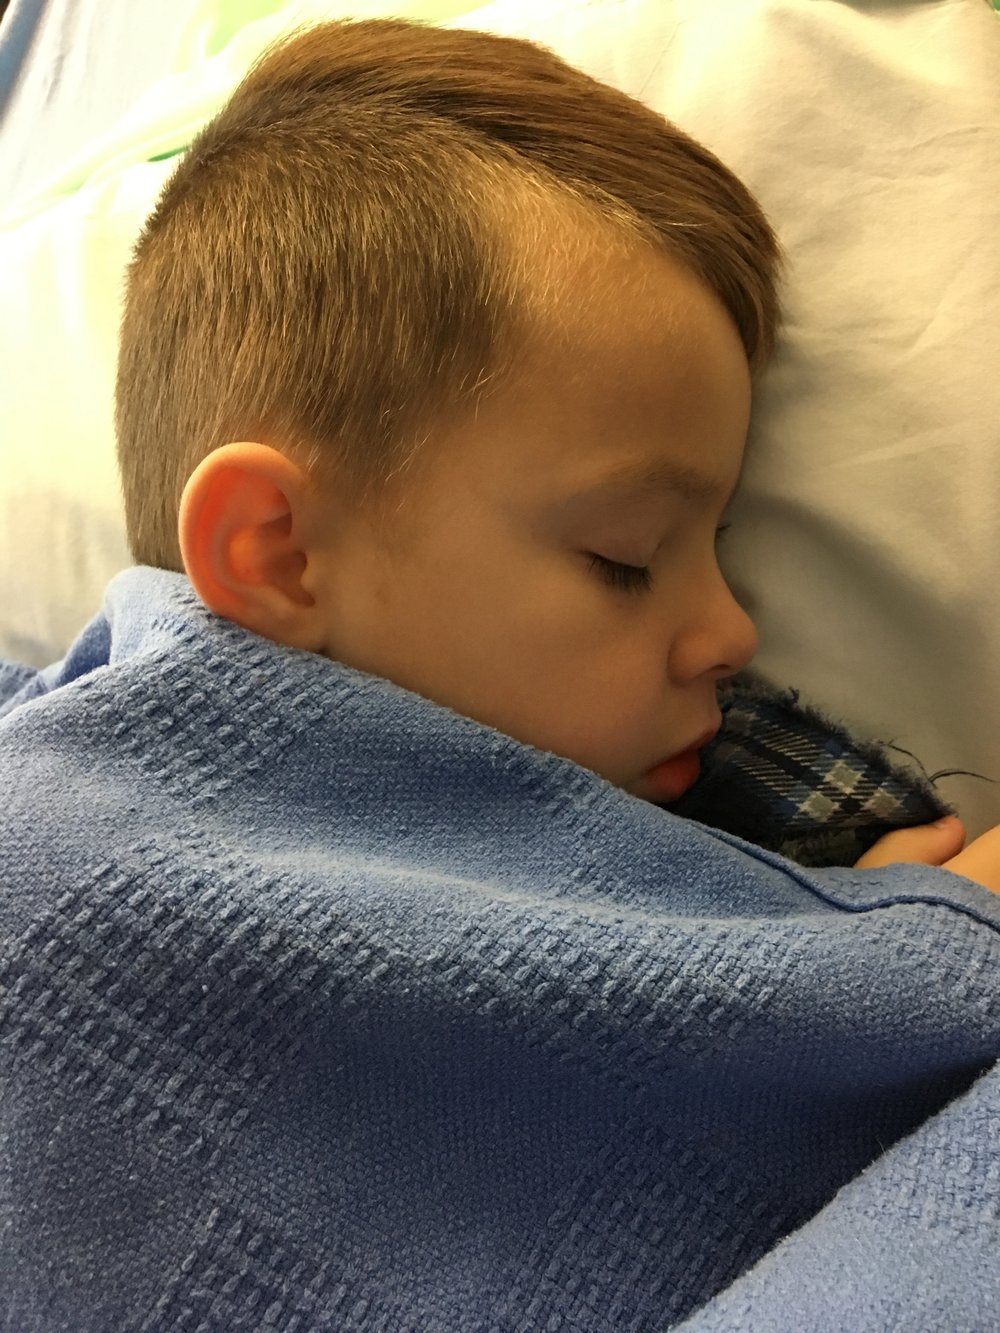 Gabe right after surgery...note Blue Blanket peeking out from under the covers...